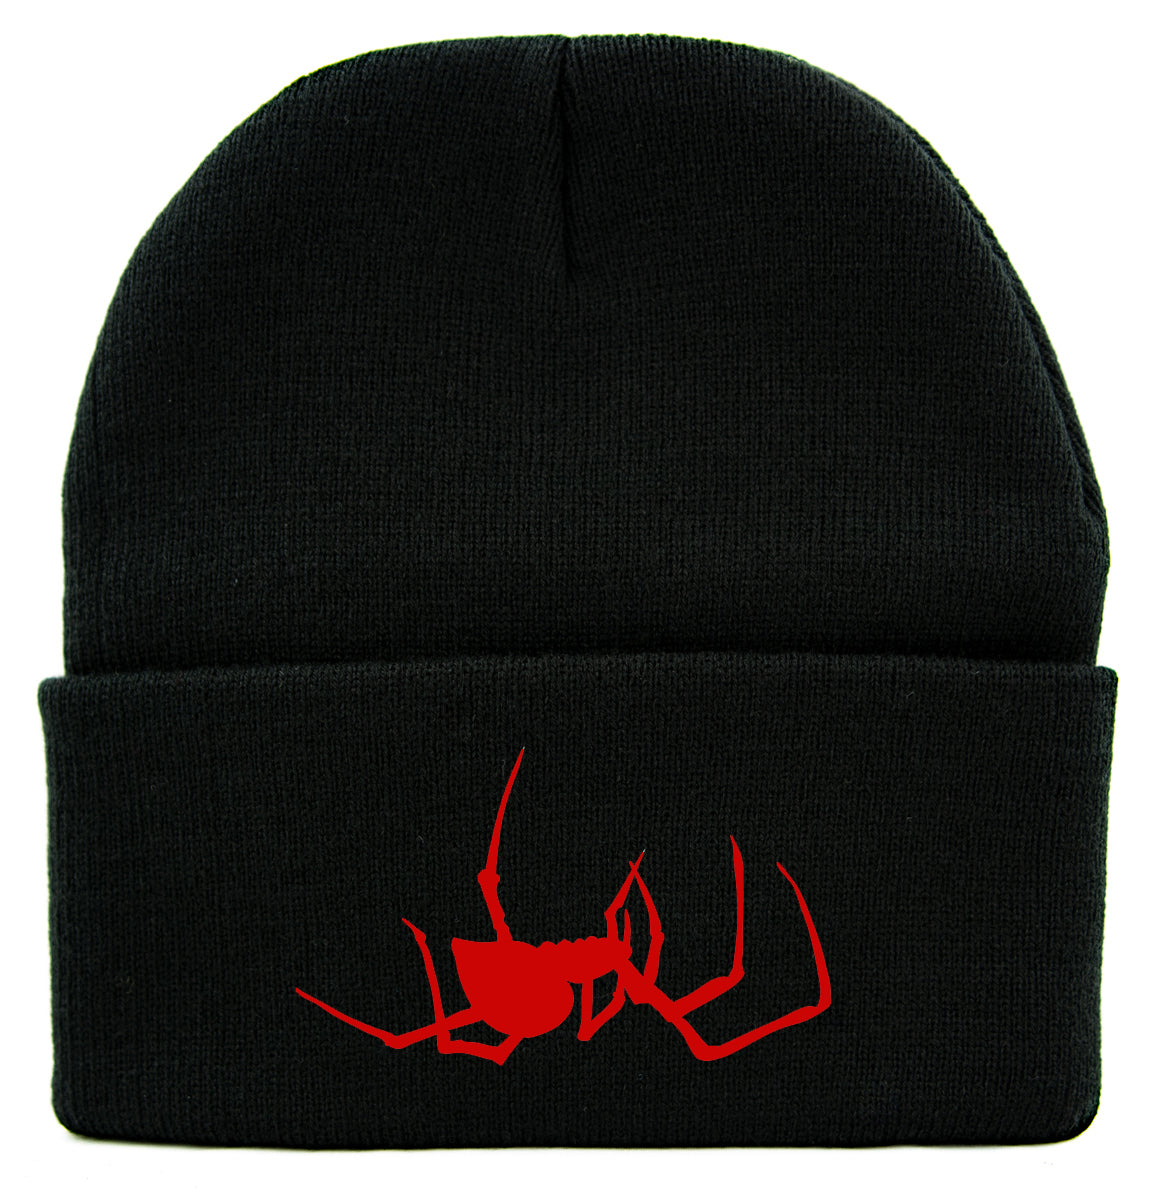 Red Spooky Crawling Black Widow Spider Cuff Beanie Knit Cap Gothic Alternative Clothing